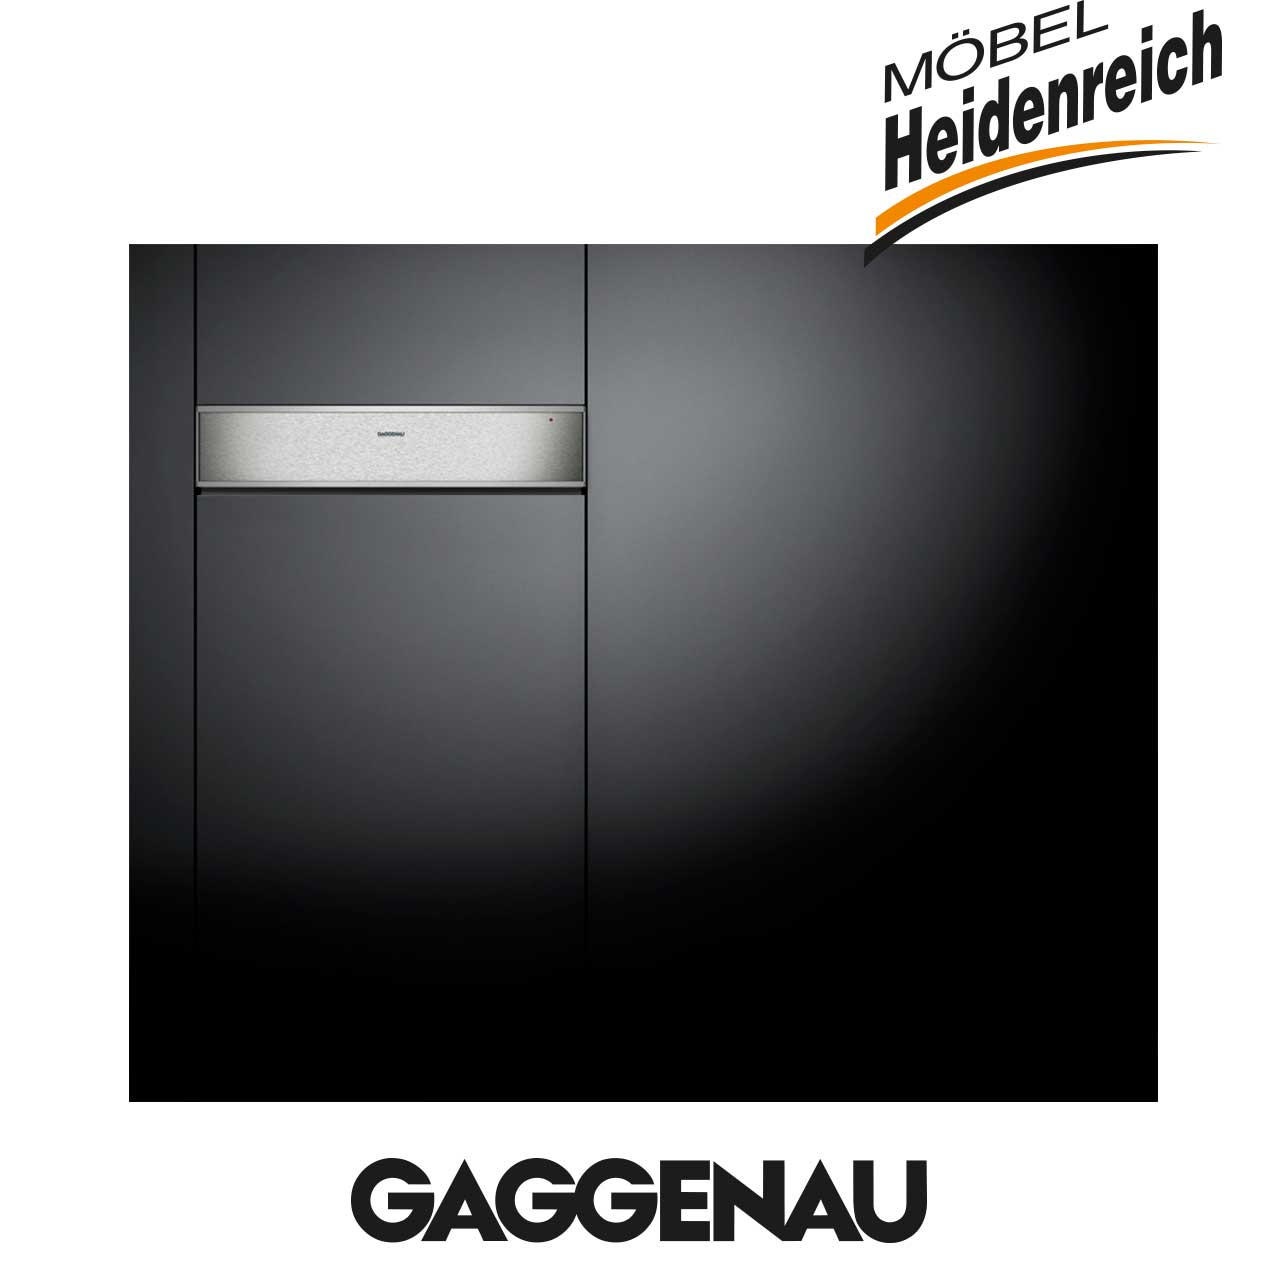 gaggenau marken m bel heidenreich. Black Bedroom Furniture Sets. Home Design Ideas